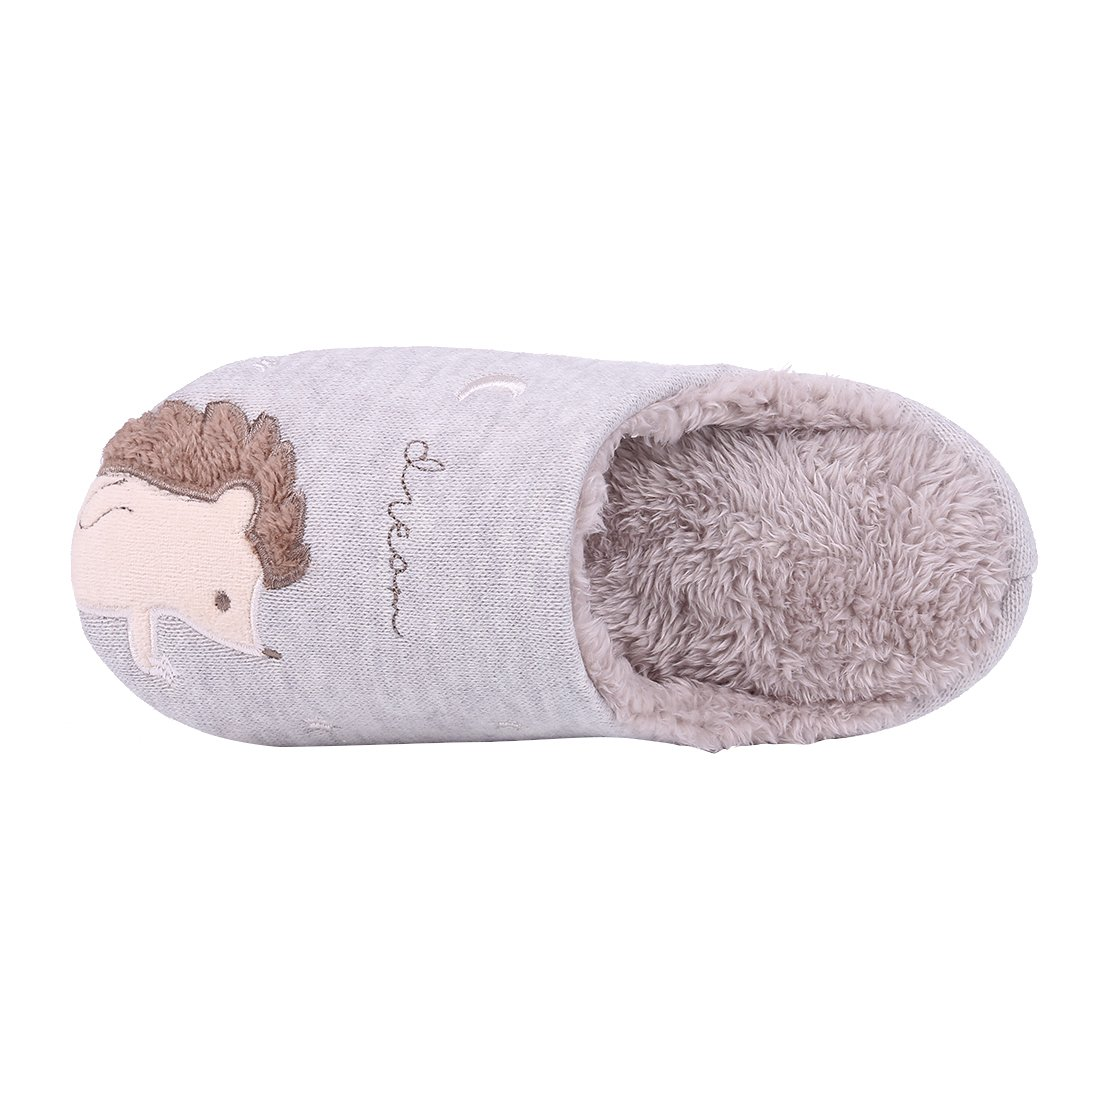 Cute Animal House Slippers Hedgehog Dog Family Indoor Slippers Waterproof Sole Fuzzy Bedroom Slippers for Kids 16G-M by Shevalues (Image #4)